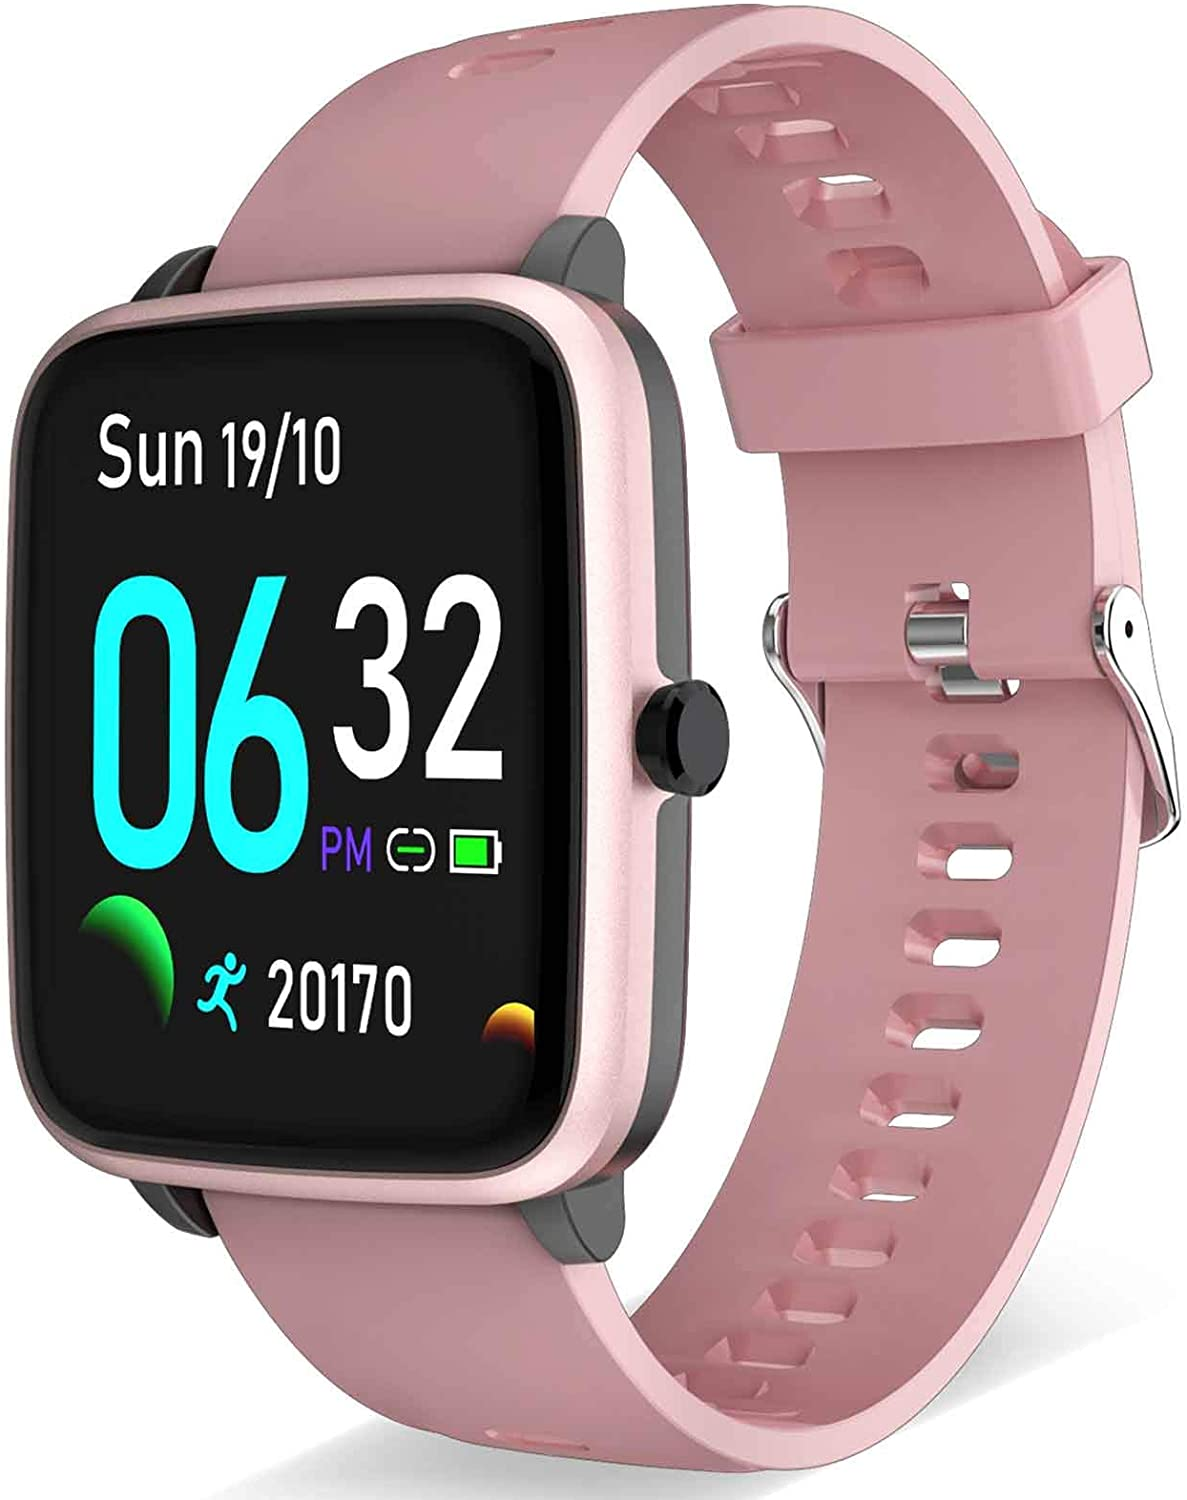 Smart Watch - Fitness and Health Tracker for Men Women with All-Day Heart Rate Monitor Step Calorie Burned Sleep Monitor Smartwatch Activity Tracker Pedometer Compatible with Android iPhone (Pink)